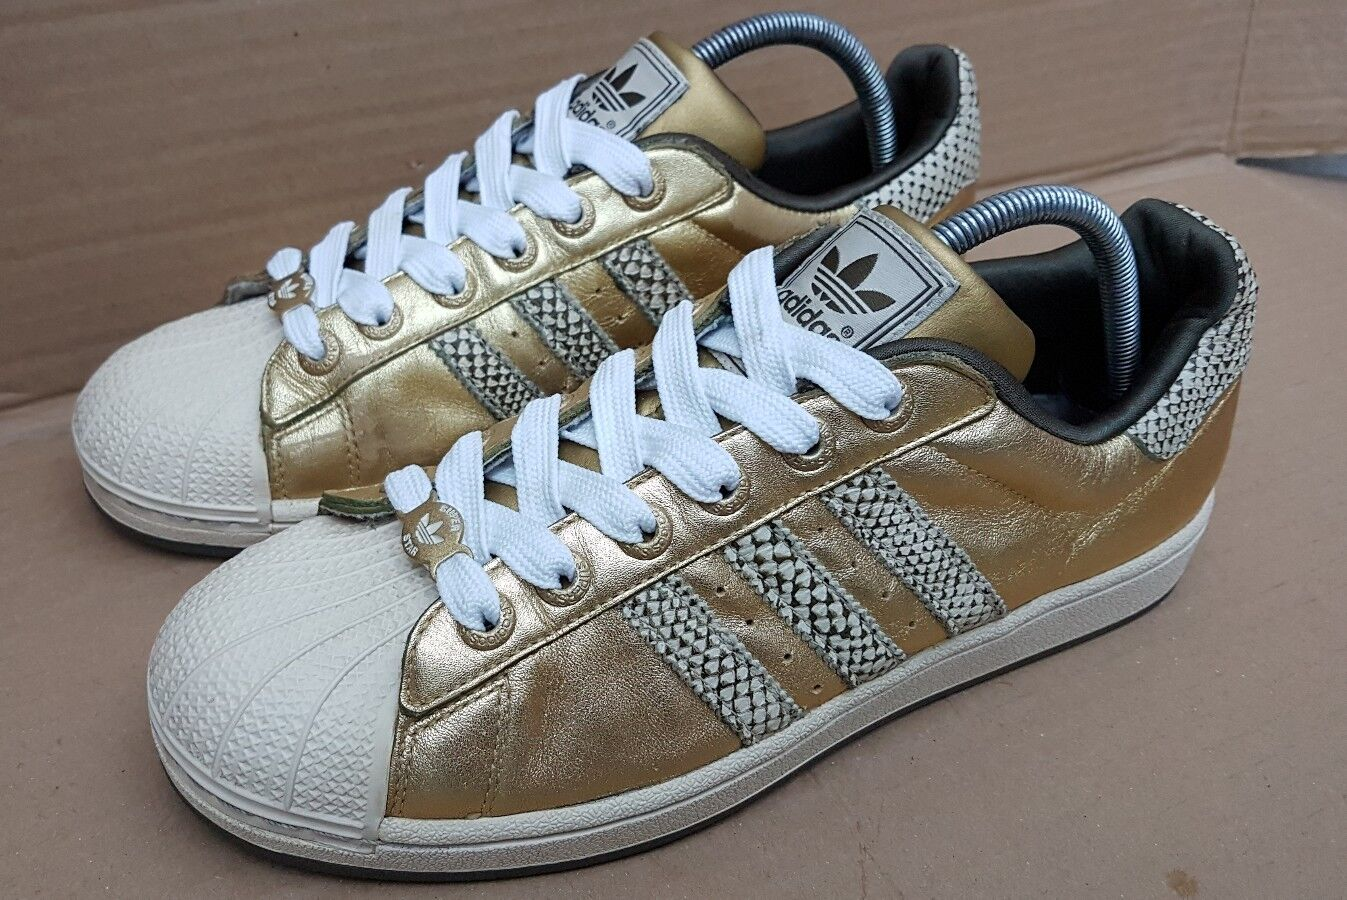 ADIDAS SUPERSTAR TRAINERS GOLD SNAKESKIN IN SIZE 7.5 UK RARE DEADSTOCK